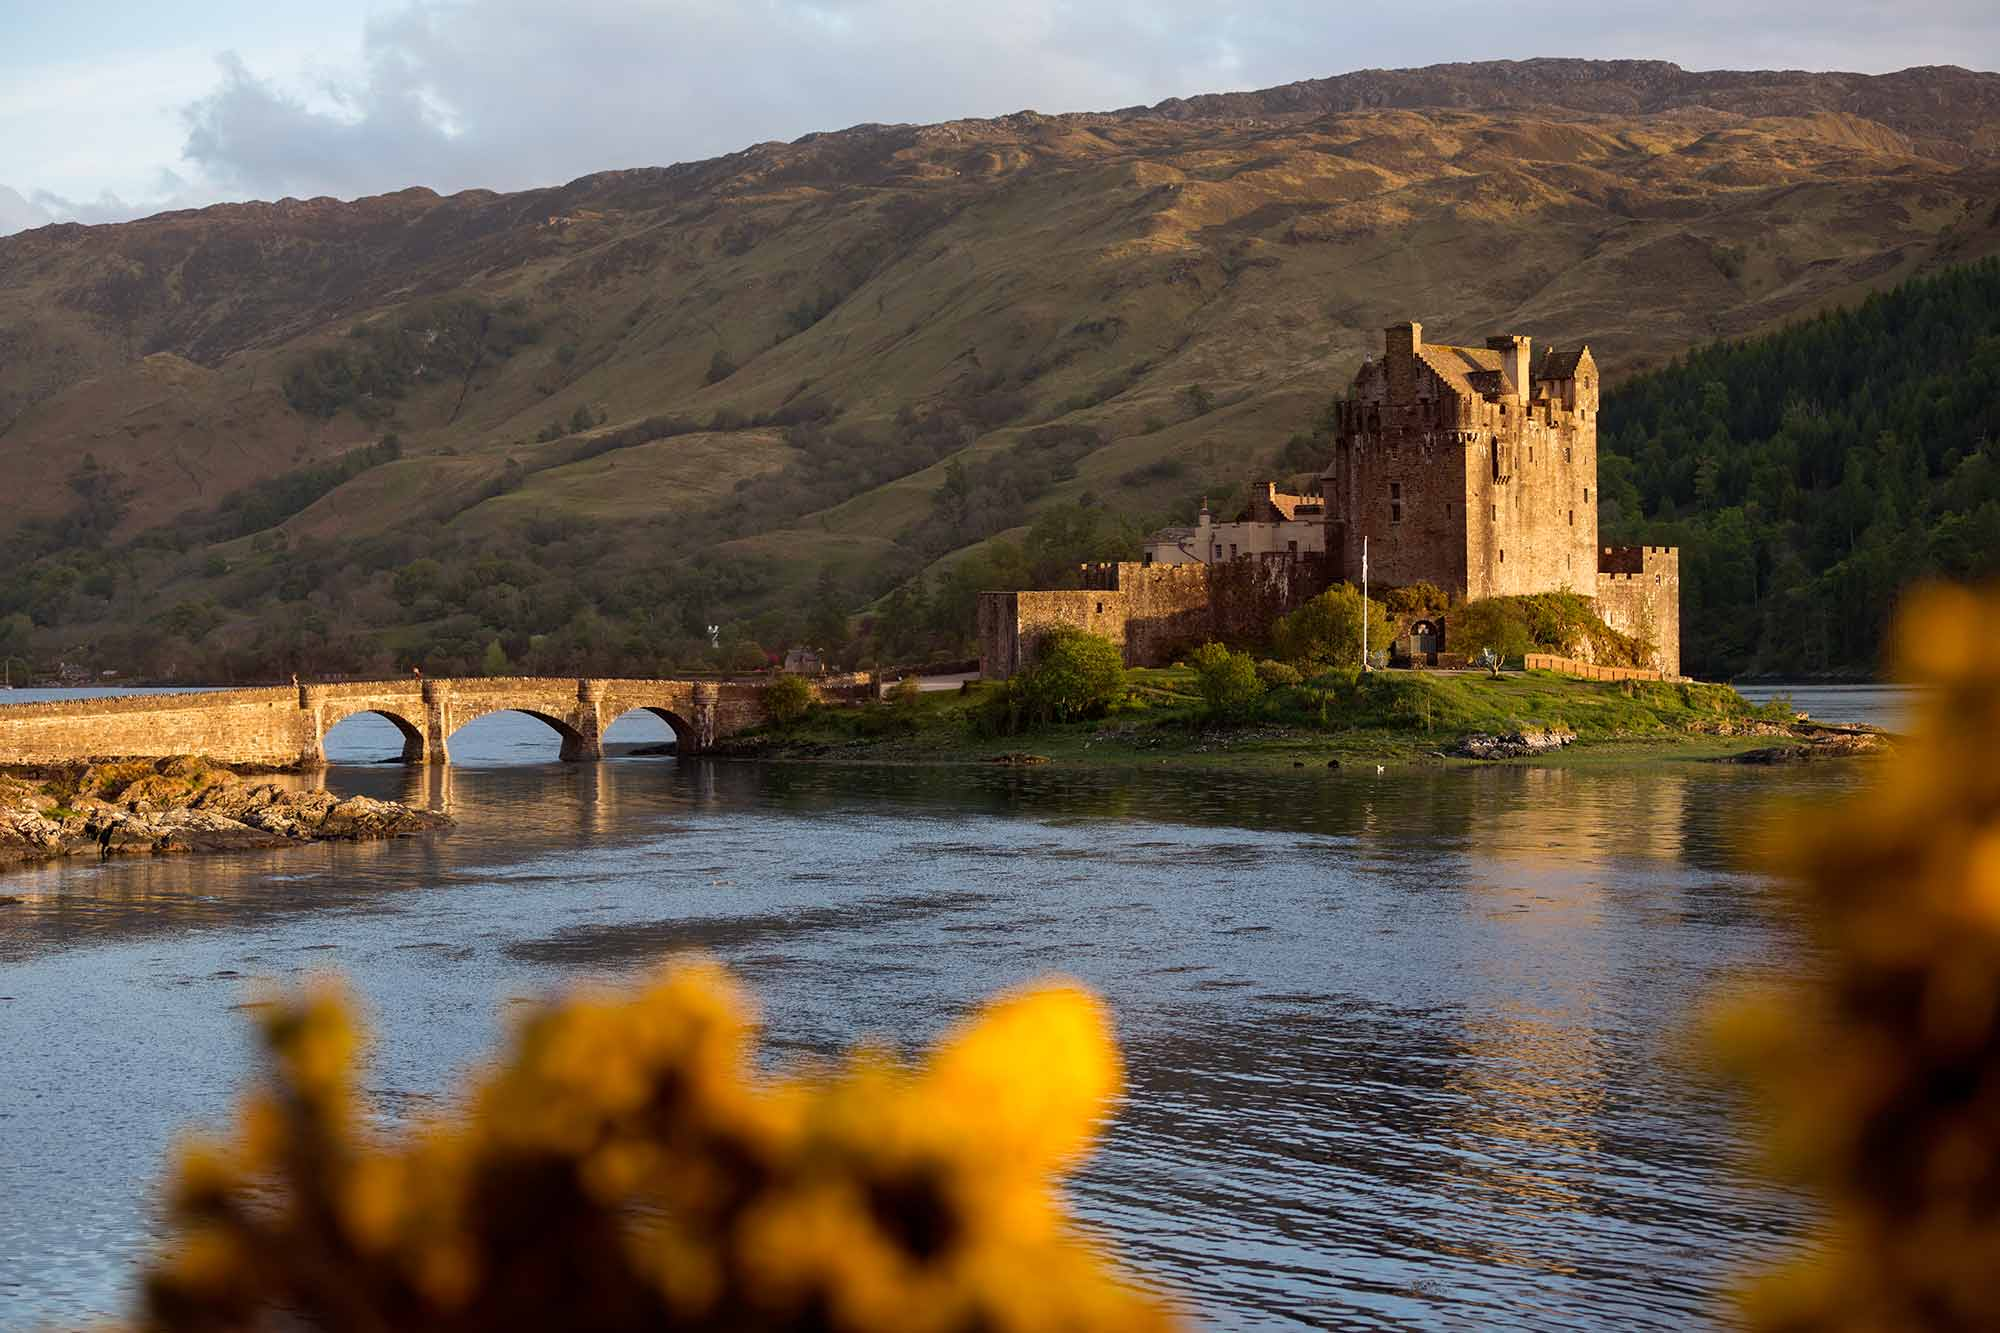 Eilean Donan Castle is the most famous of all castles in Scotland. © ULLI MAIER & NISA MAIER